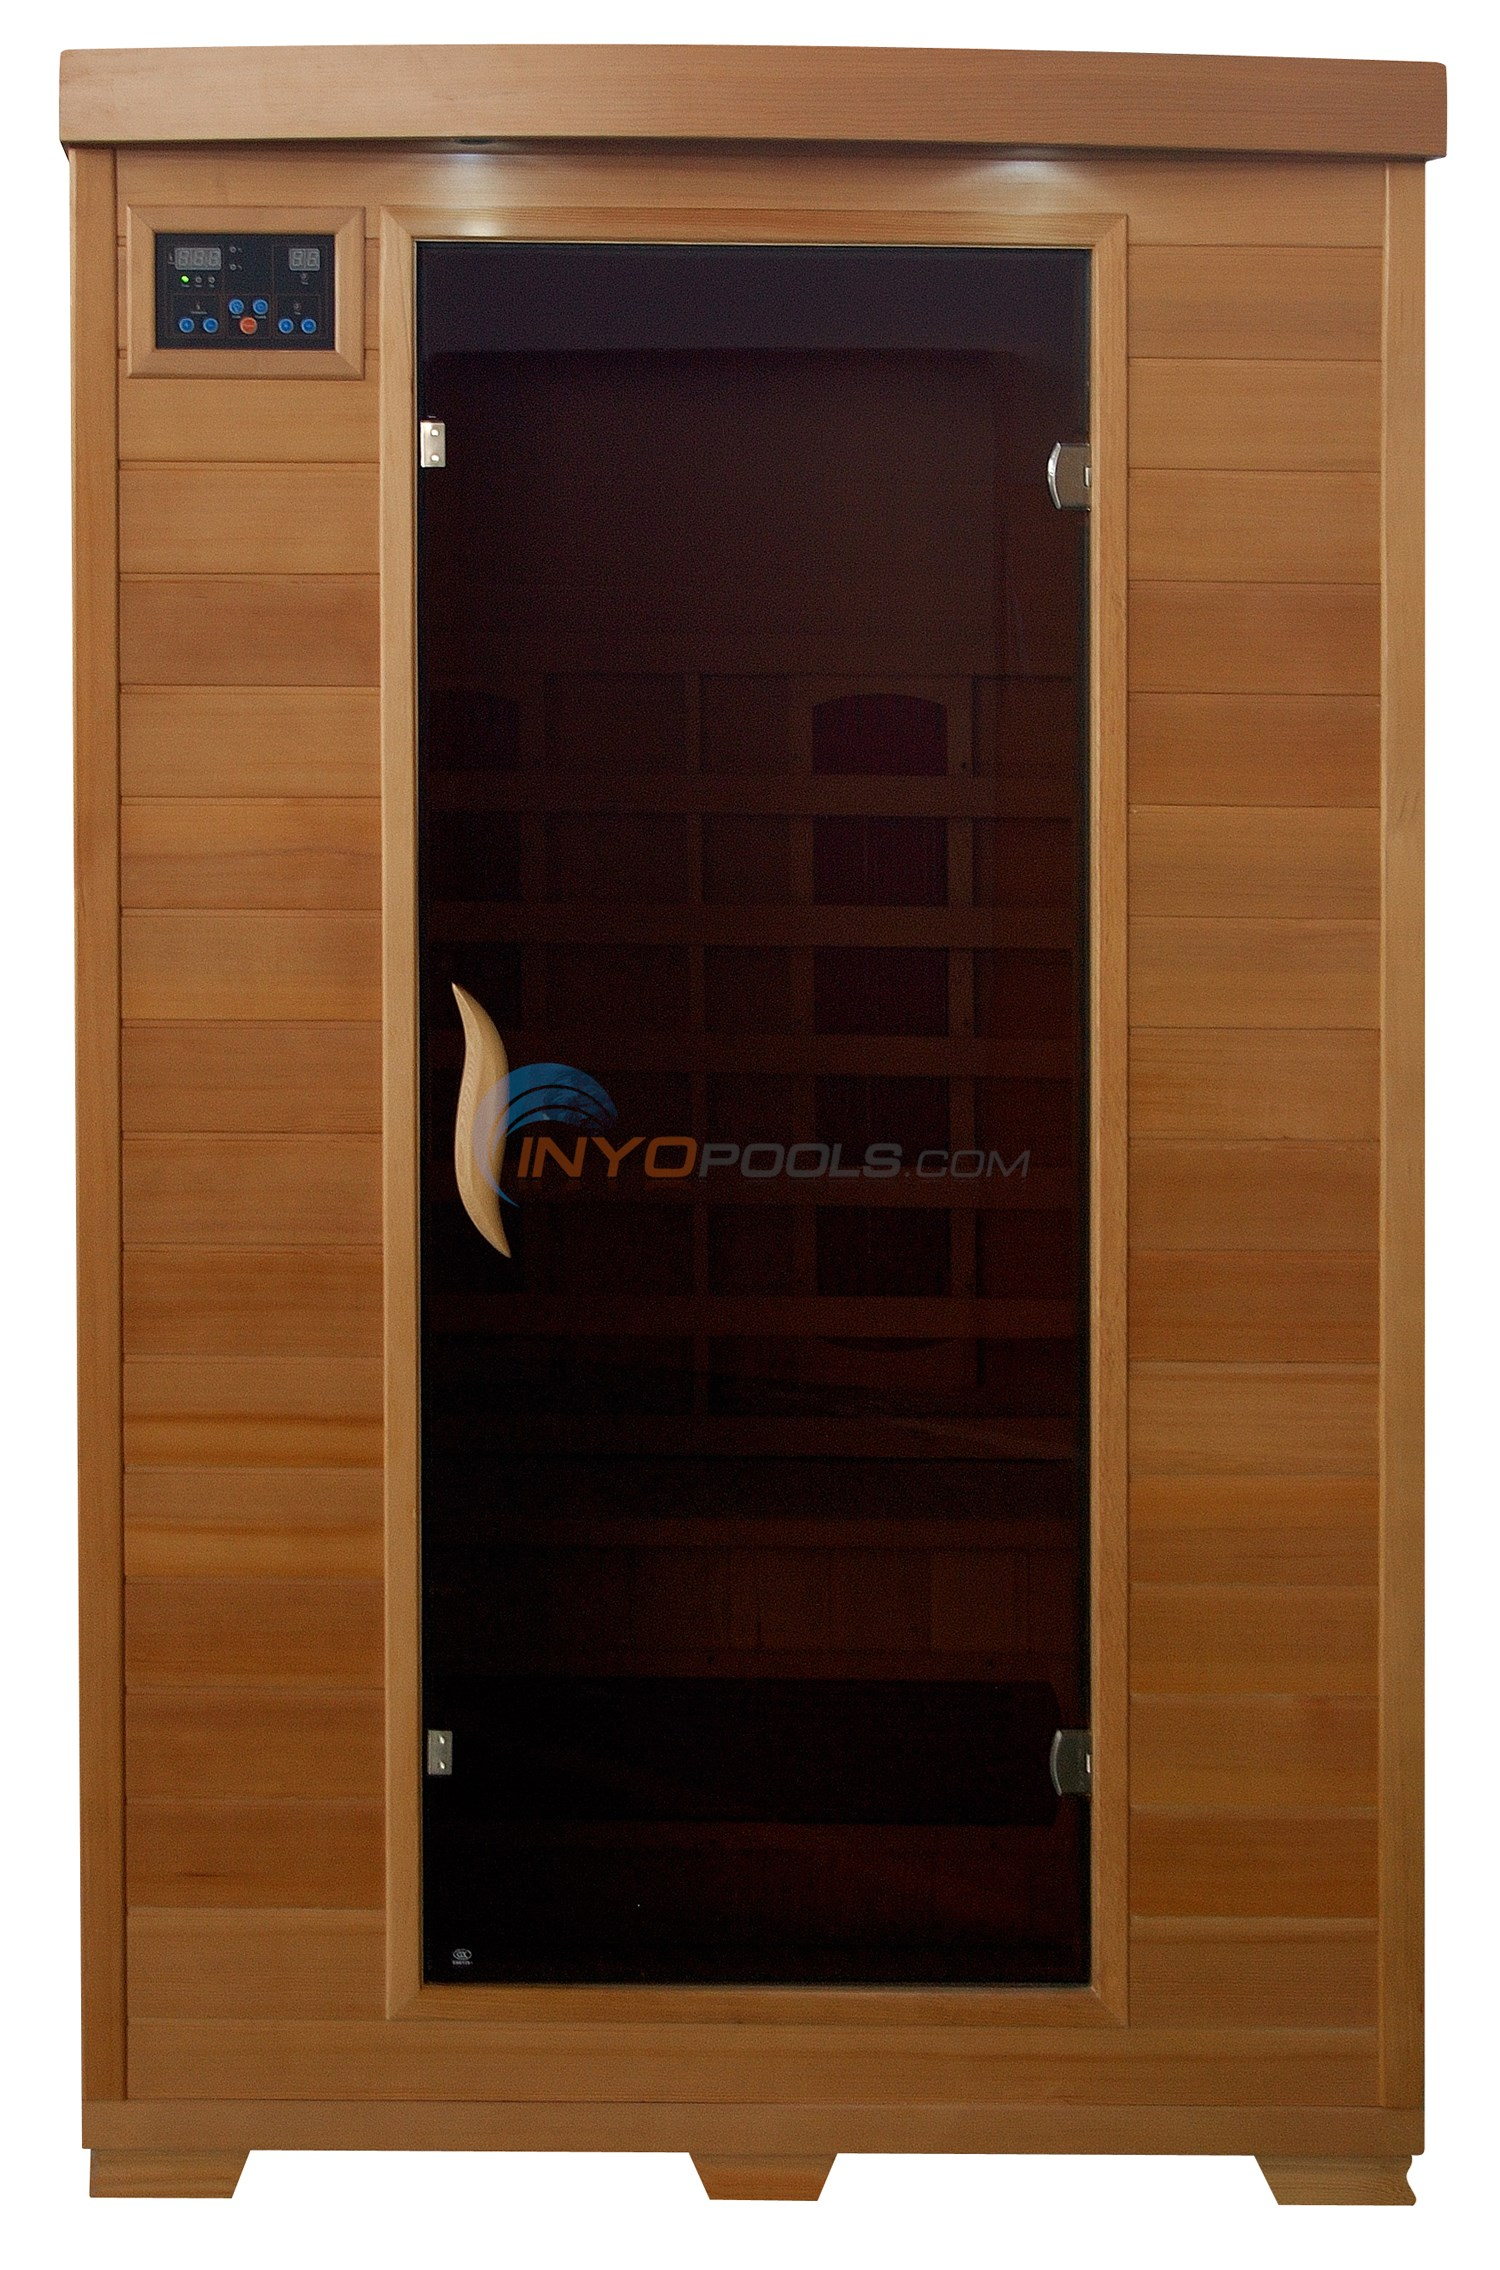 Blue Wave Coronado - 2 Person Ceramic Infrared Sauna - SA2406 - Alternate 1